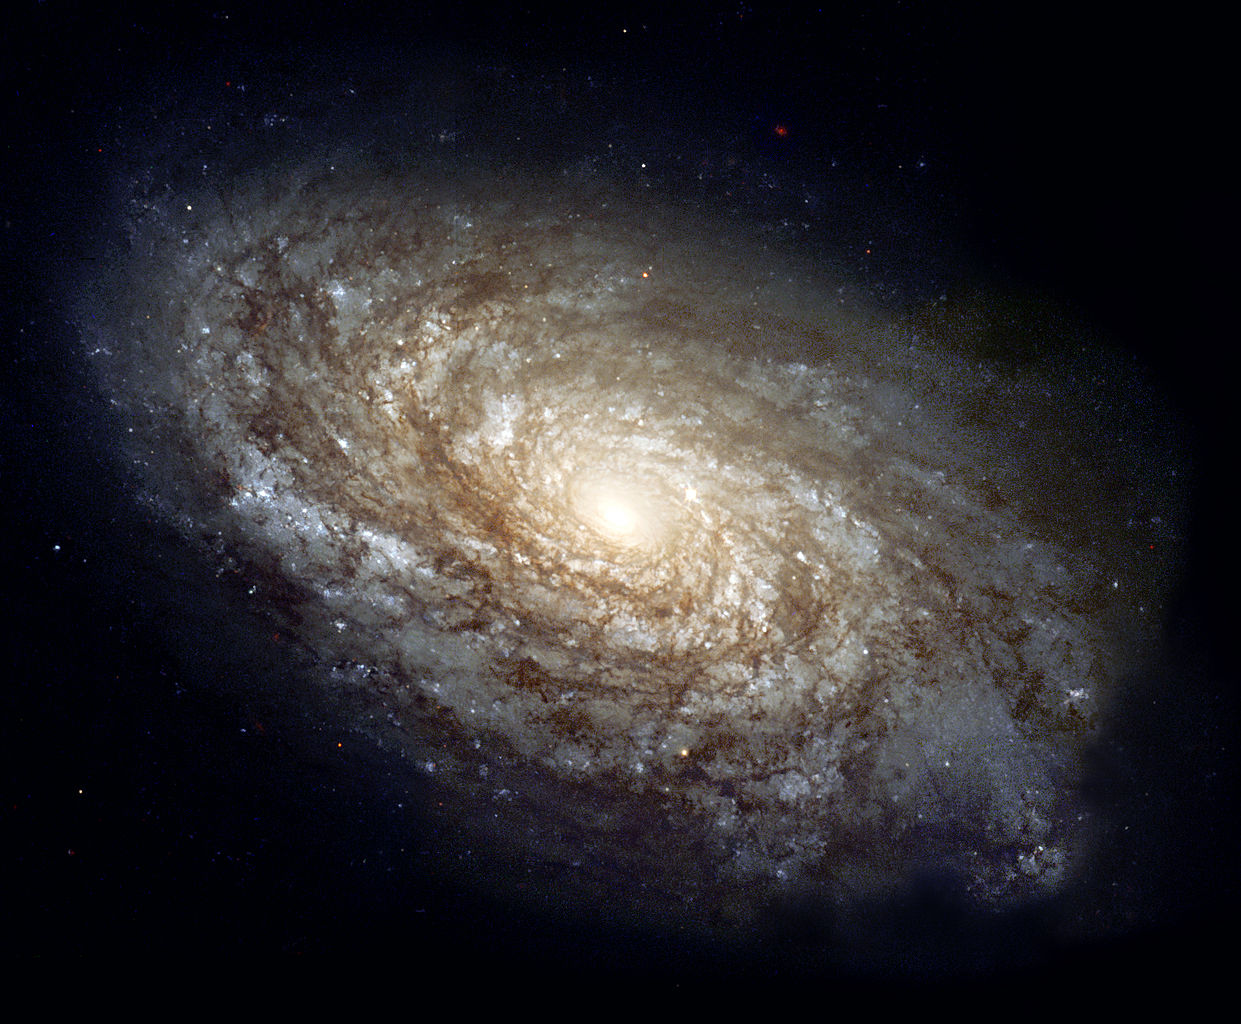 The majestic spiral galaxy NGC 4414 imaged by the Hubble Space Telescope in 1995